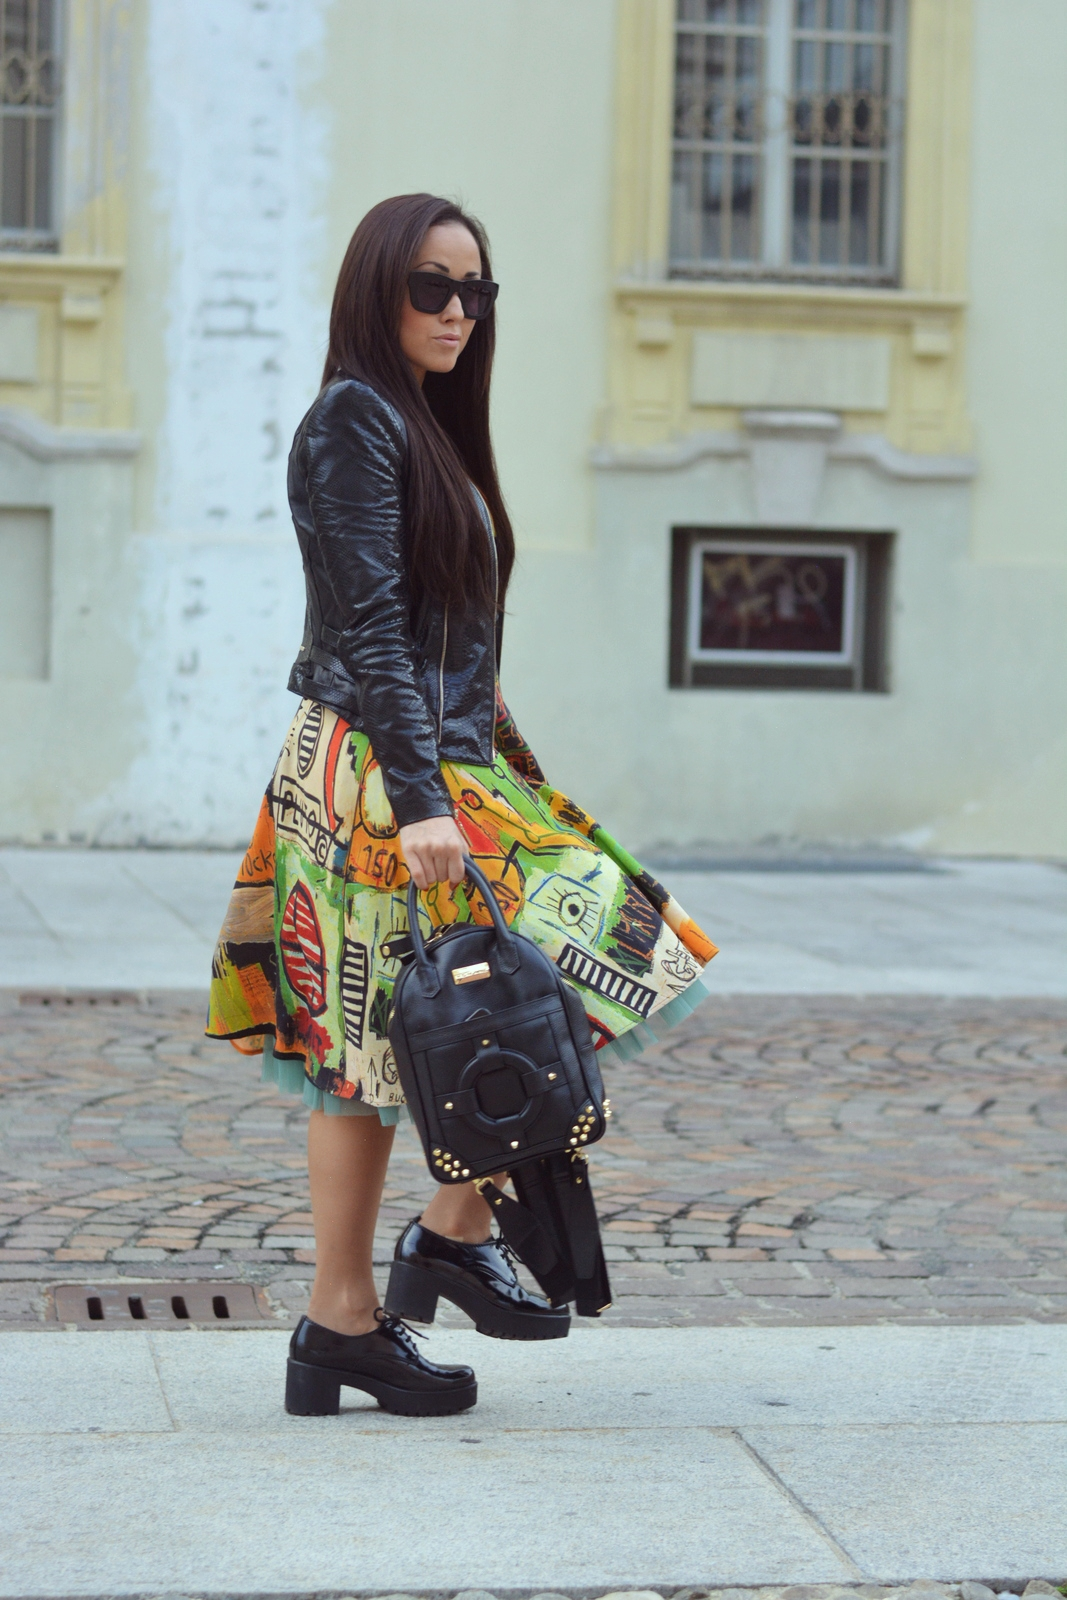 Jessica Neumann , ultrachic milano, mangano, Deichmann, Modern princess, outfit, printed, made in Italy, Street Style, Culture & Trend Magazine,